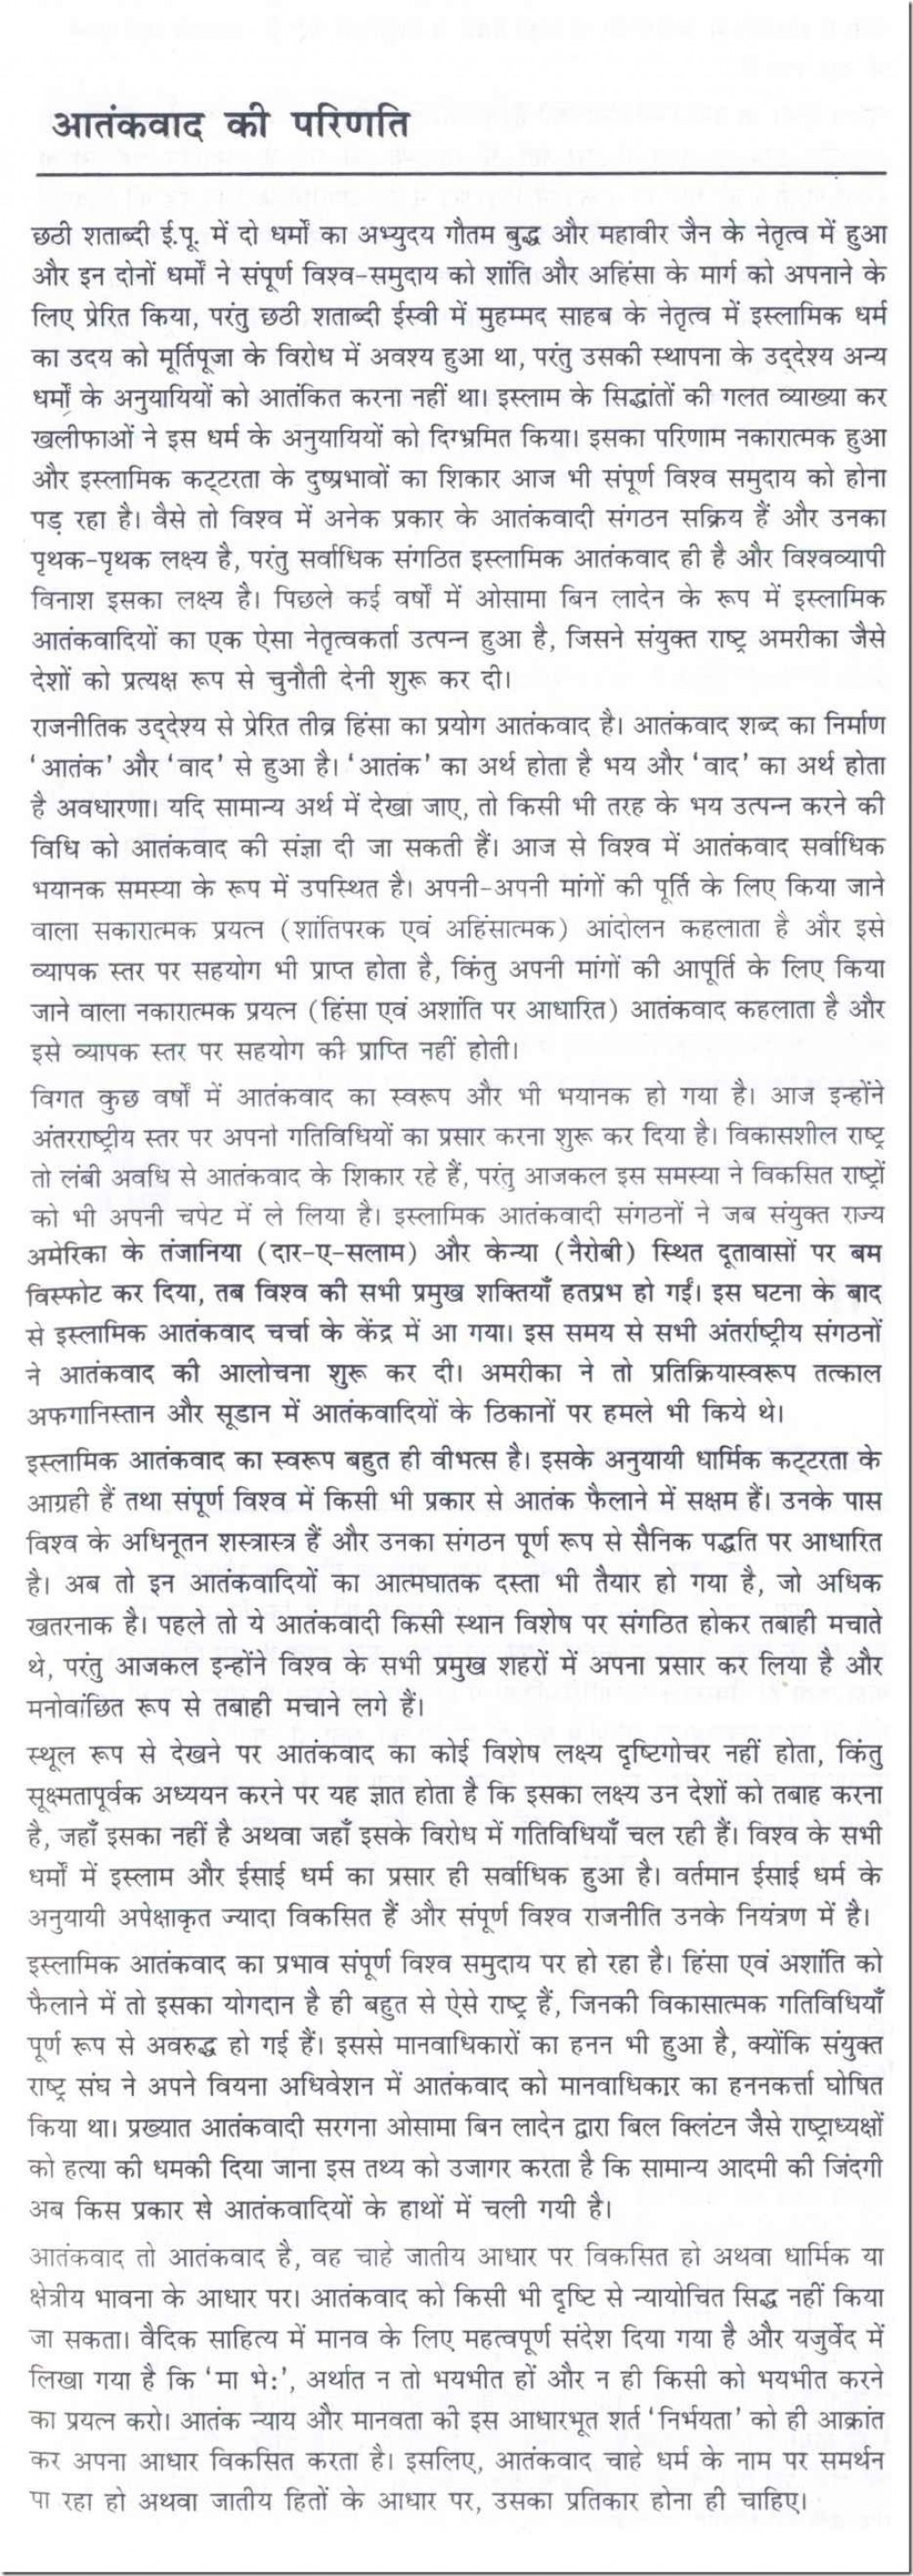 006 Essay Example 10010 Thumb Global Terrorism In Outstanding Hindi Large